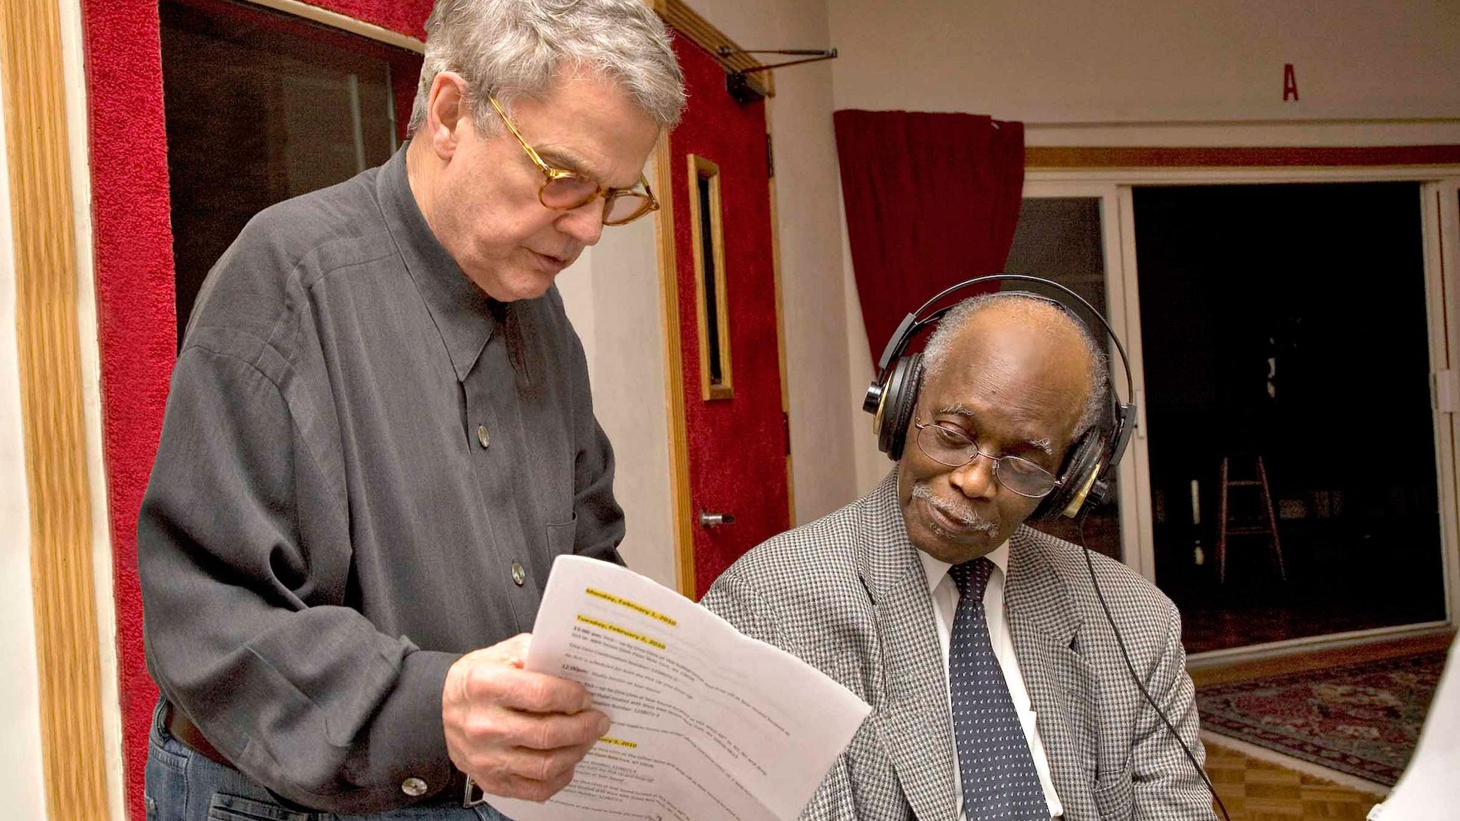 Longtime friends and jazz legends, bassist Charlie Haden and late pianist Hank Jones, created an inspired collection of spirituals, hymns and folk songs that represent…